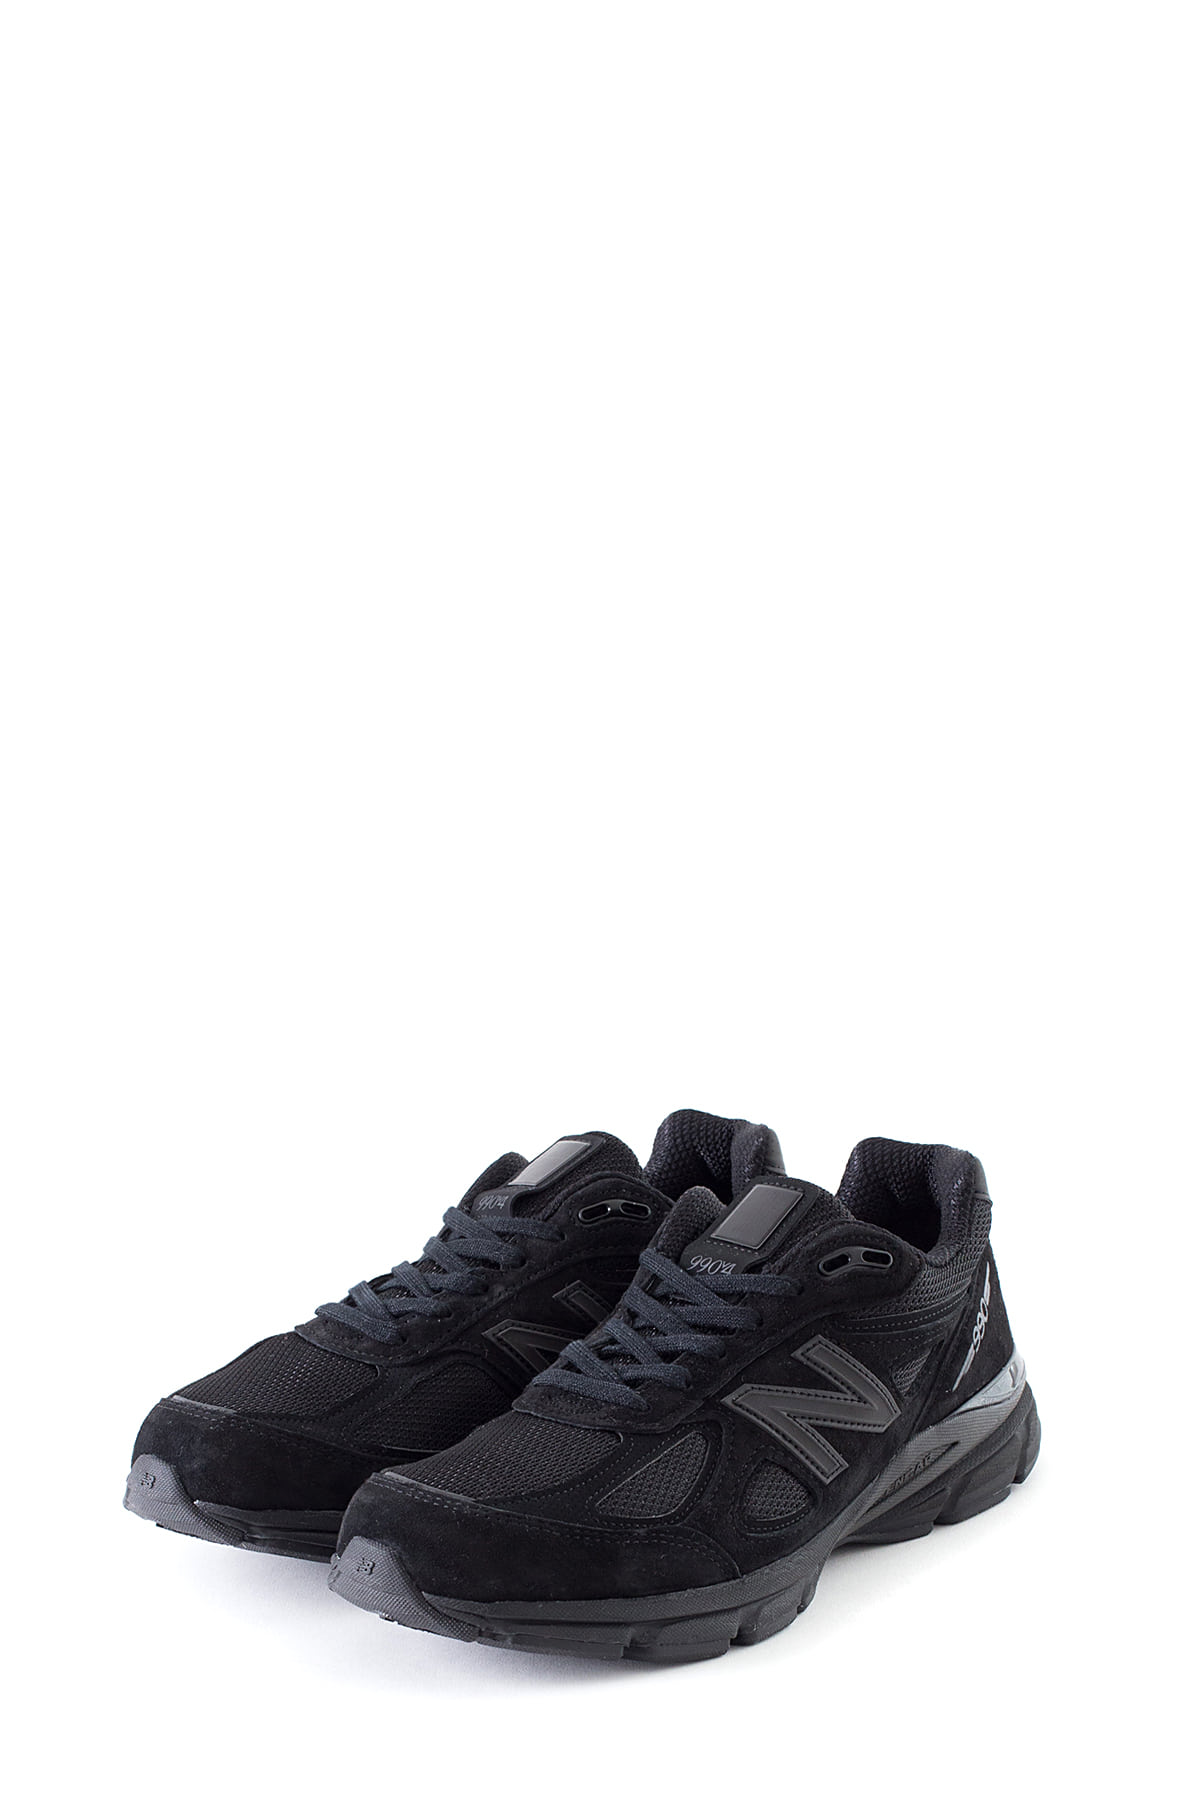 New Balance : M990BB4 (Black)